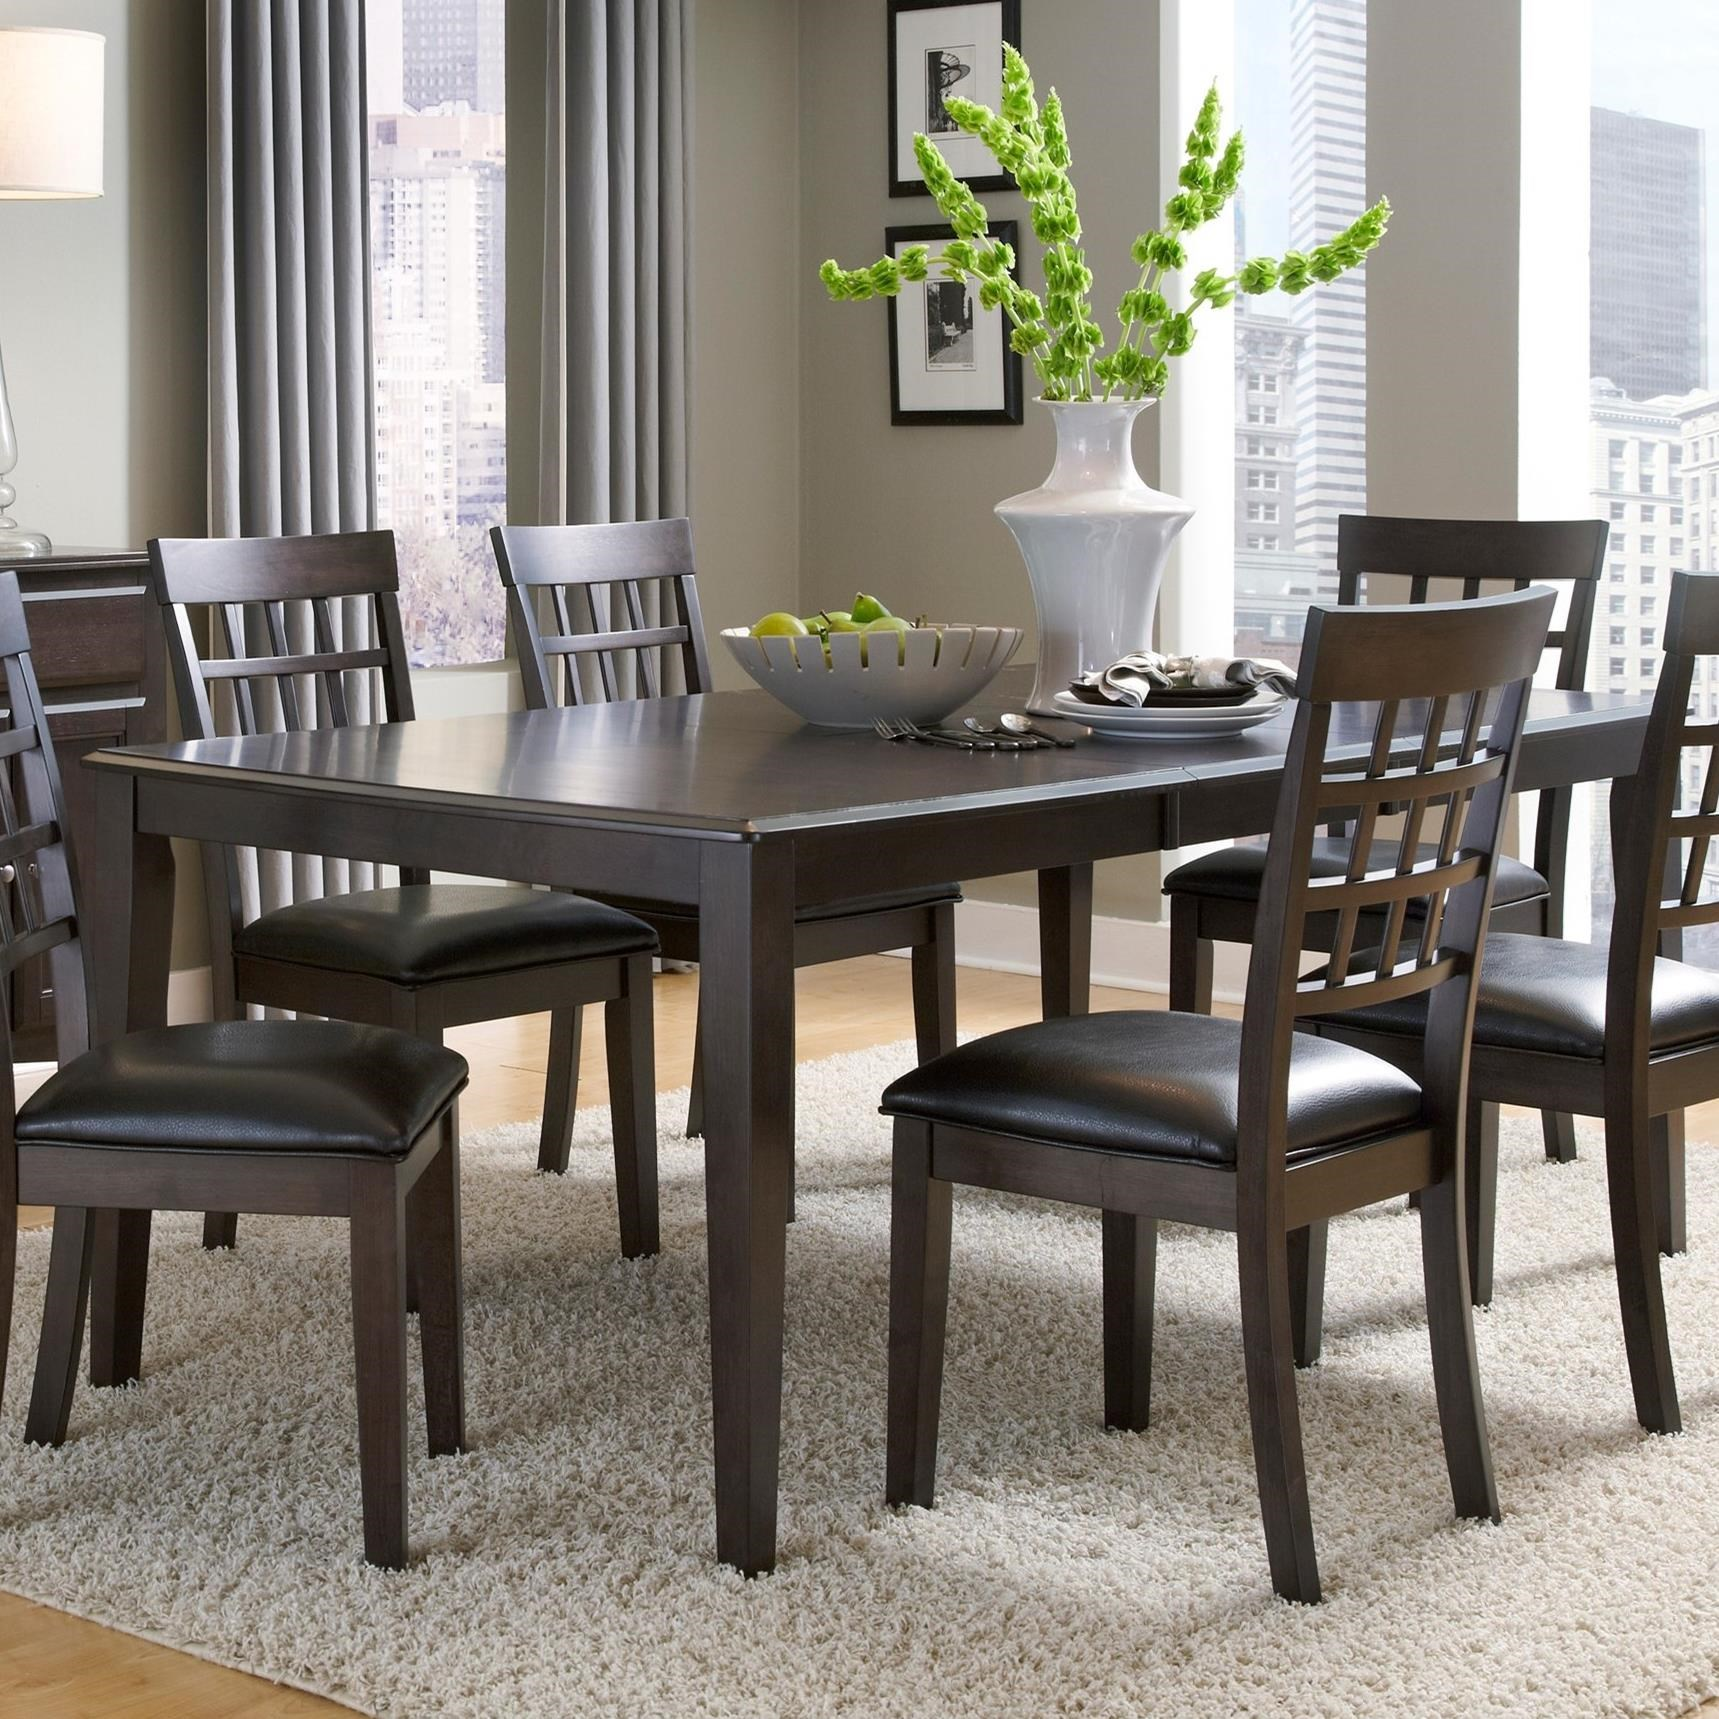 Bristol Point - WG Butterfly Leg Table by AAmerica at Zak's Home